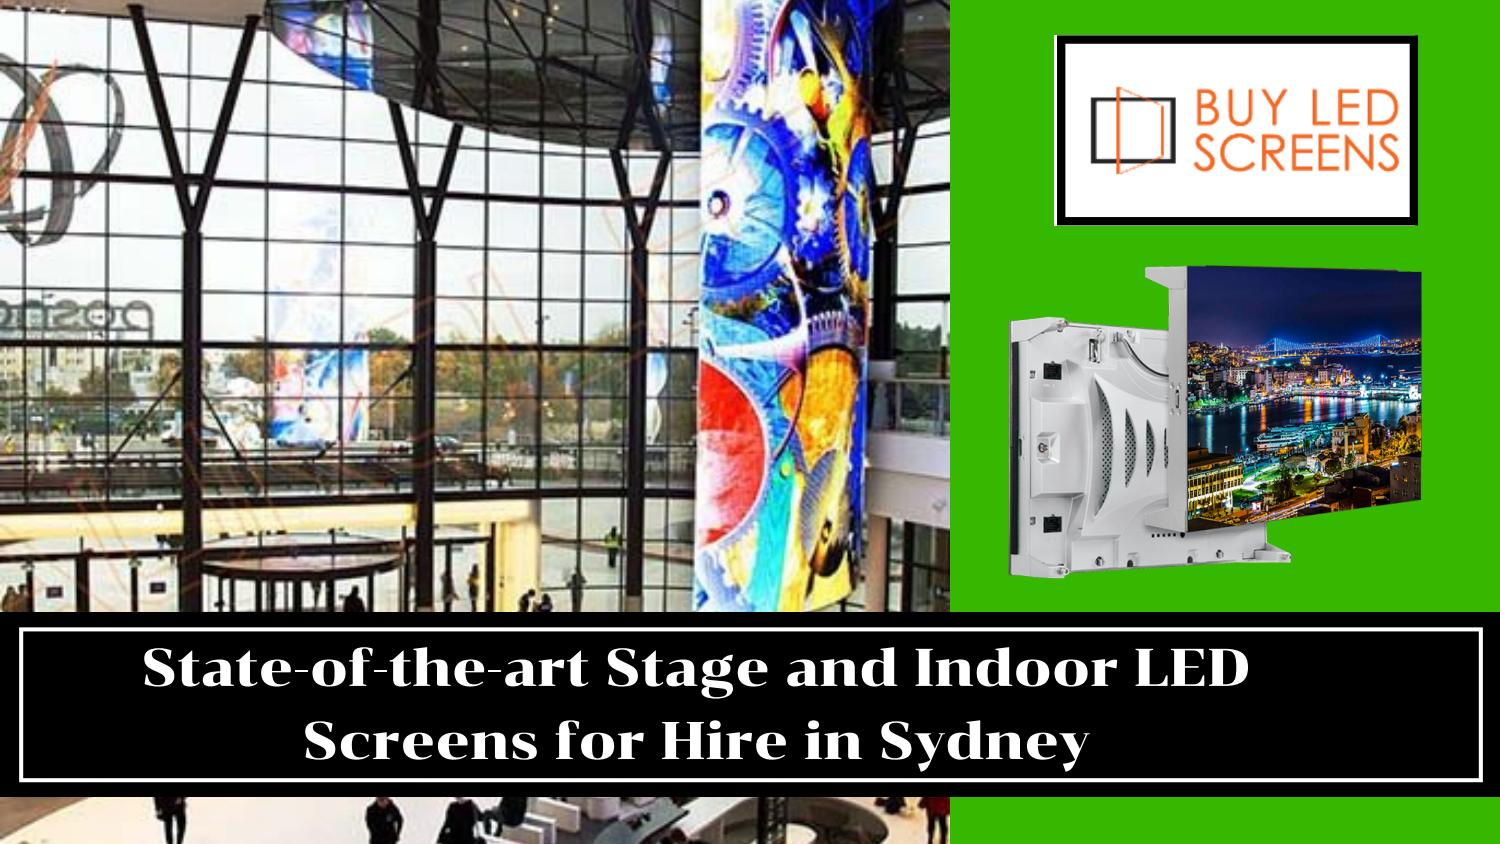 State-of-the-art Stage and Indoor LED Screens for Hire in Sydney